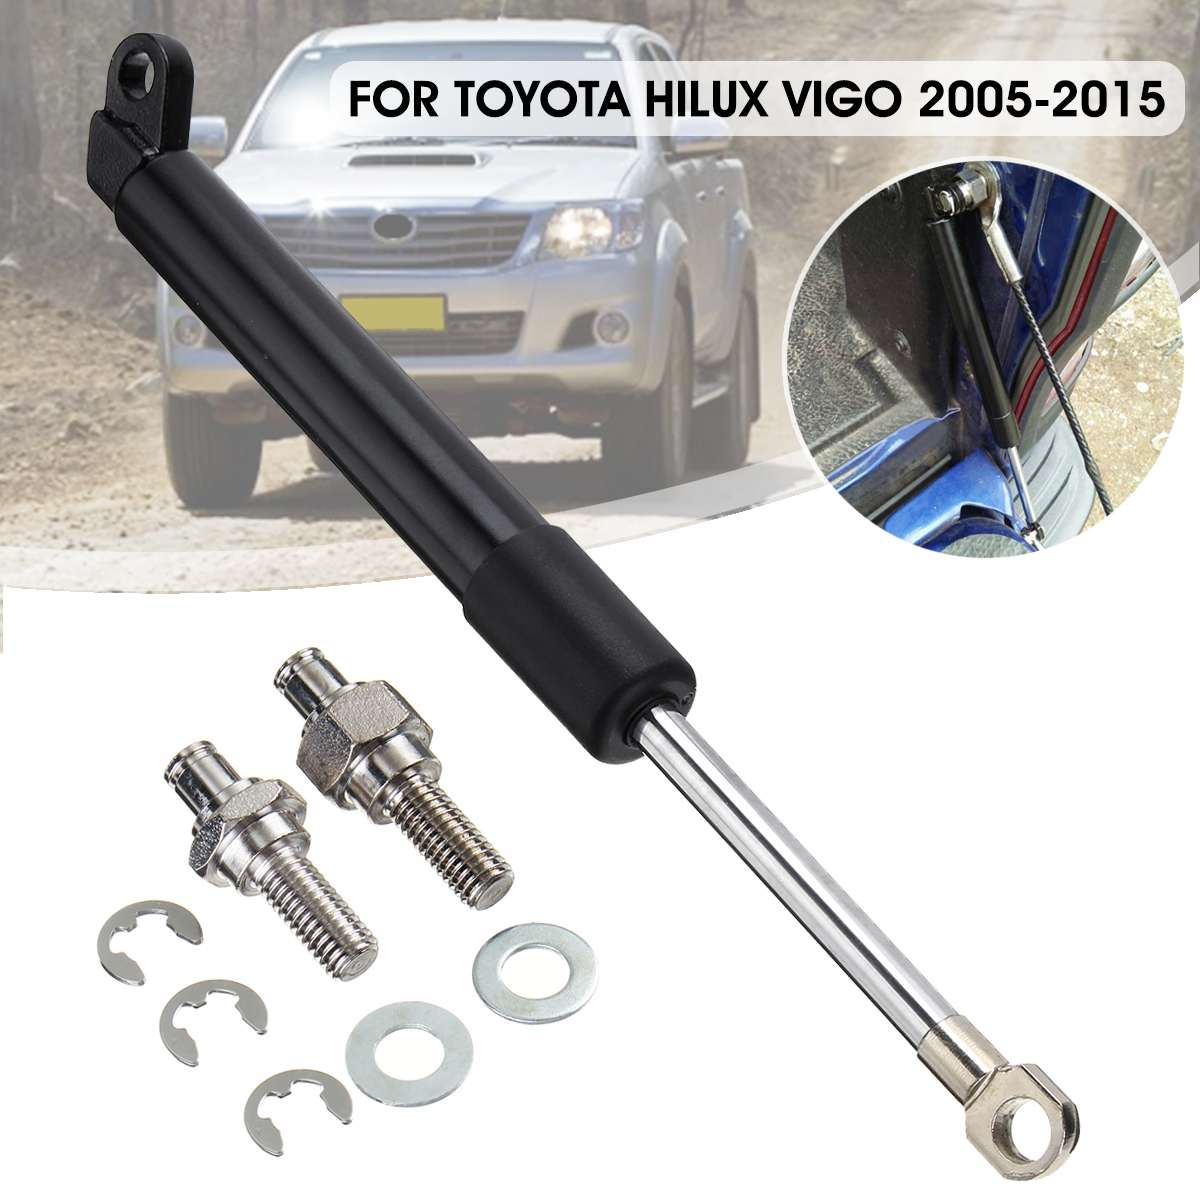 1Set Rear Trunk Tail Lift Supports Gas Strut Rod Arm Shocks Strut Bars Damper For Toyota Hilux Vigo SR5 GGN15R KUN26R 2005-20151Set Rear Trunk Tail Lift Supports Gas Strut Rod Arm Shocks Strut Bars Damper For Toyota Hilux Vigo SR5 GGN15R KUN26R 2005-2015